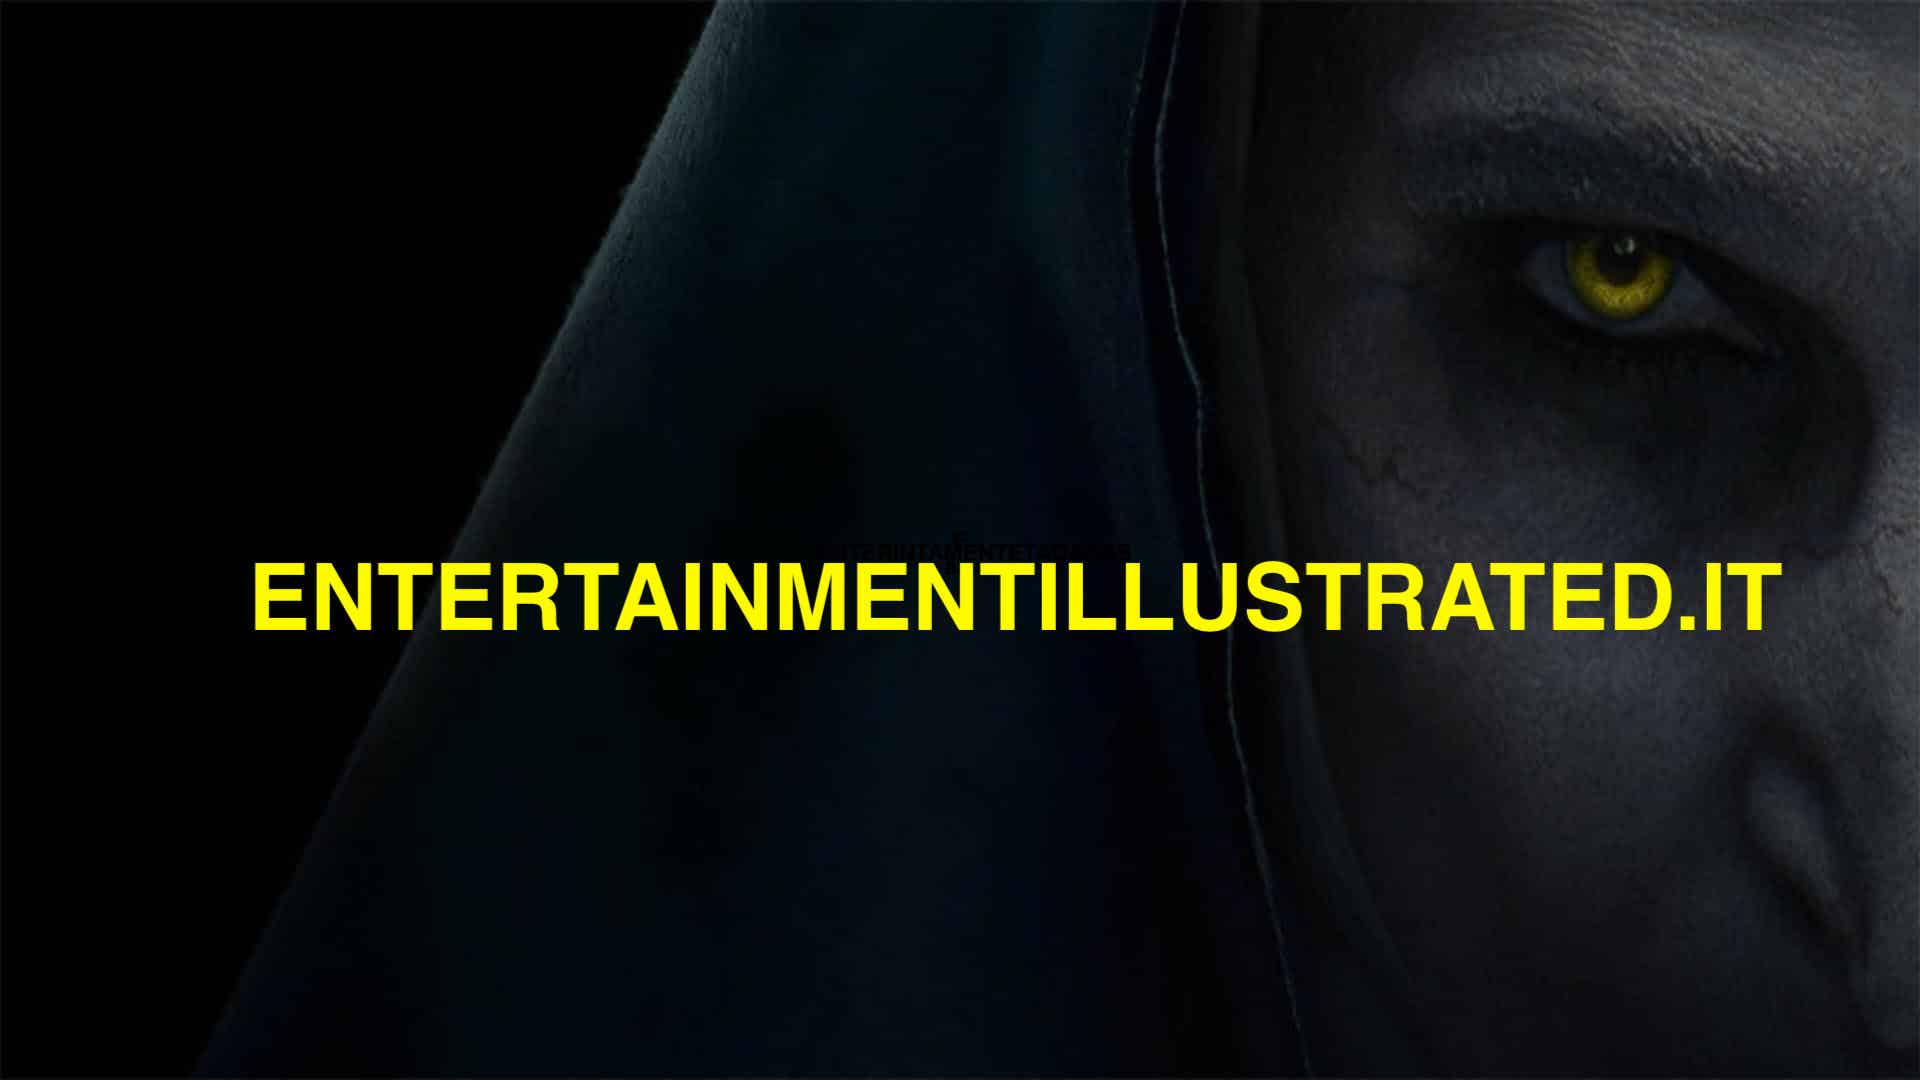 Buon 60 Compleanno Madonna Entertainment Illustrated